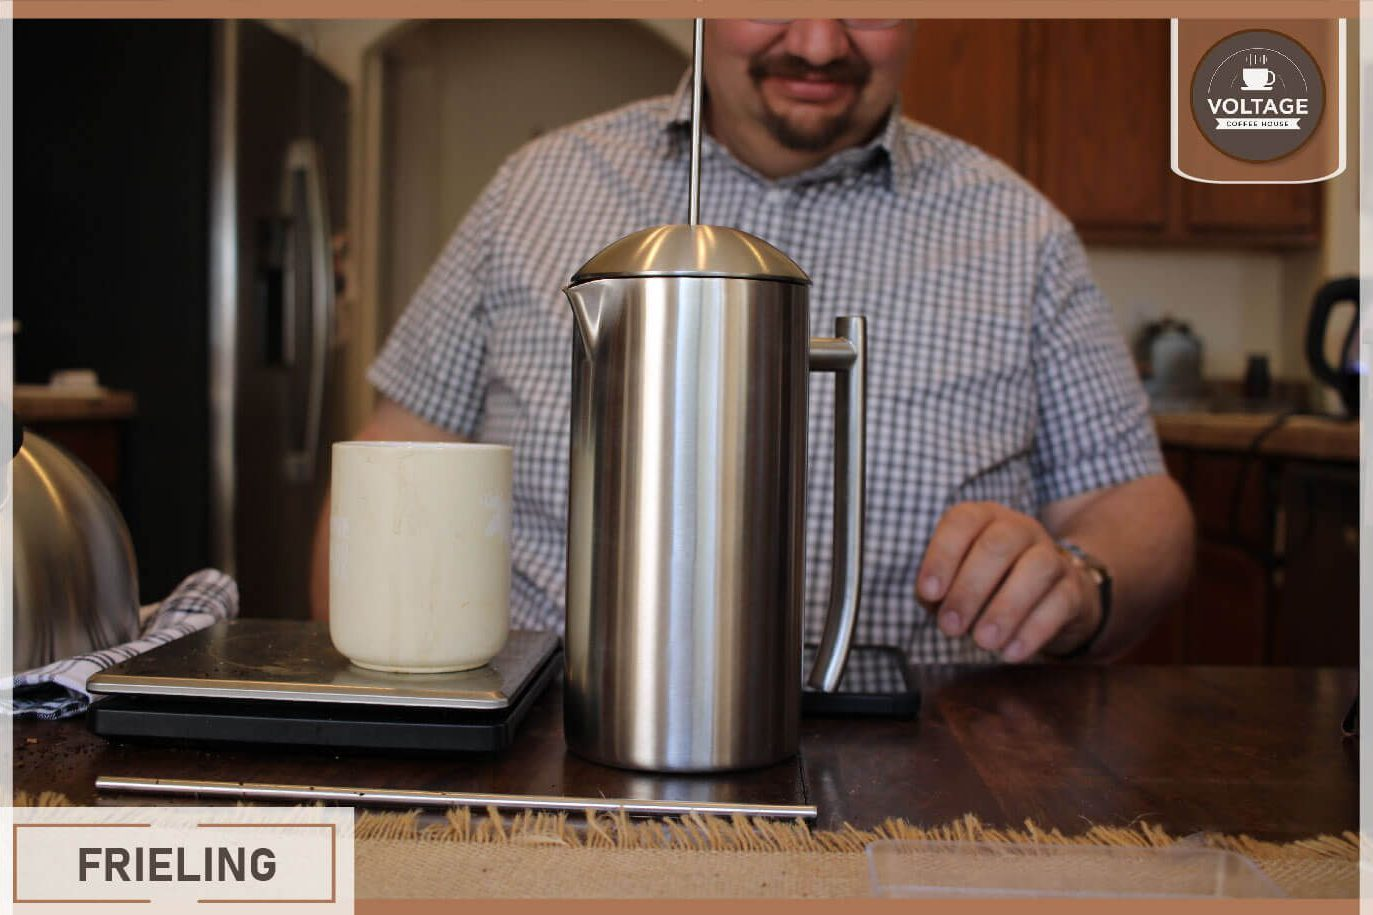 Frieling french press maker review